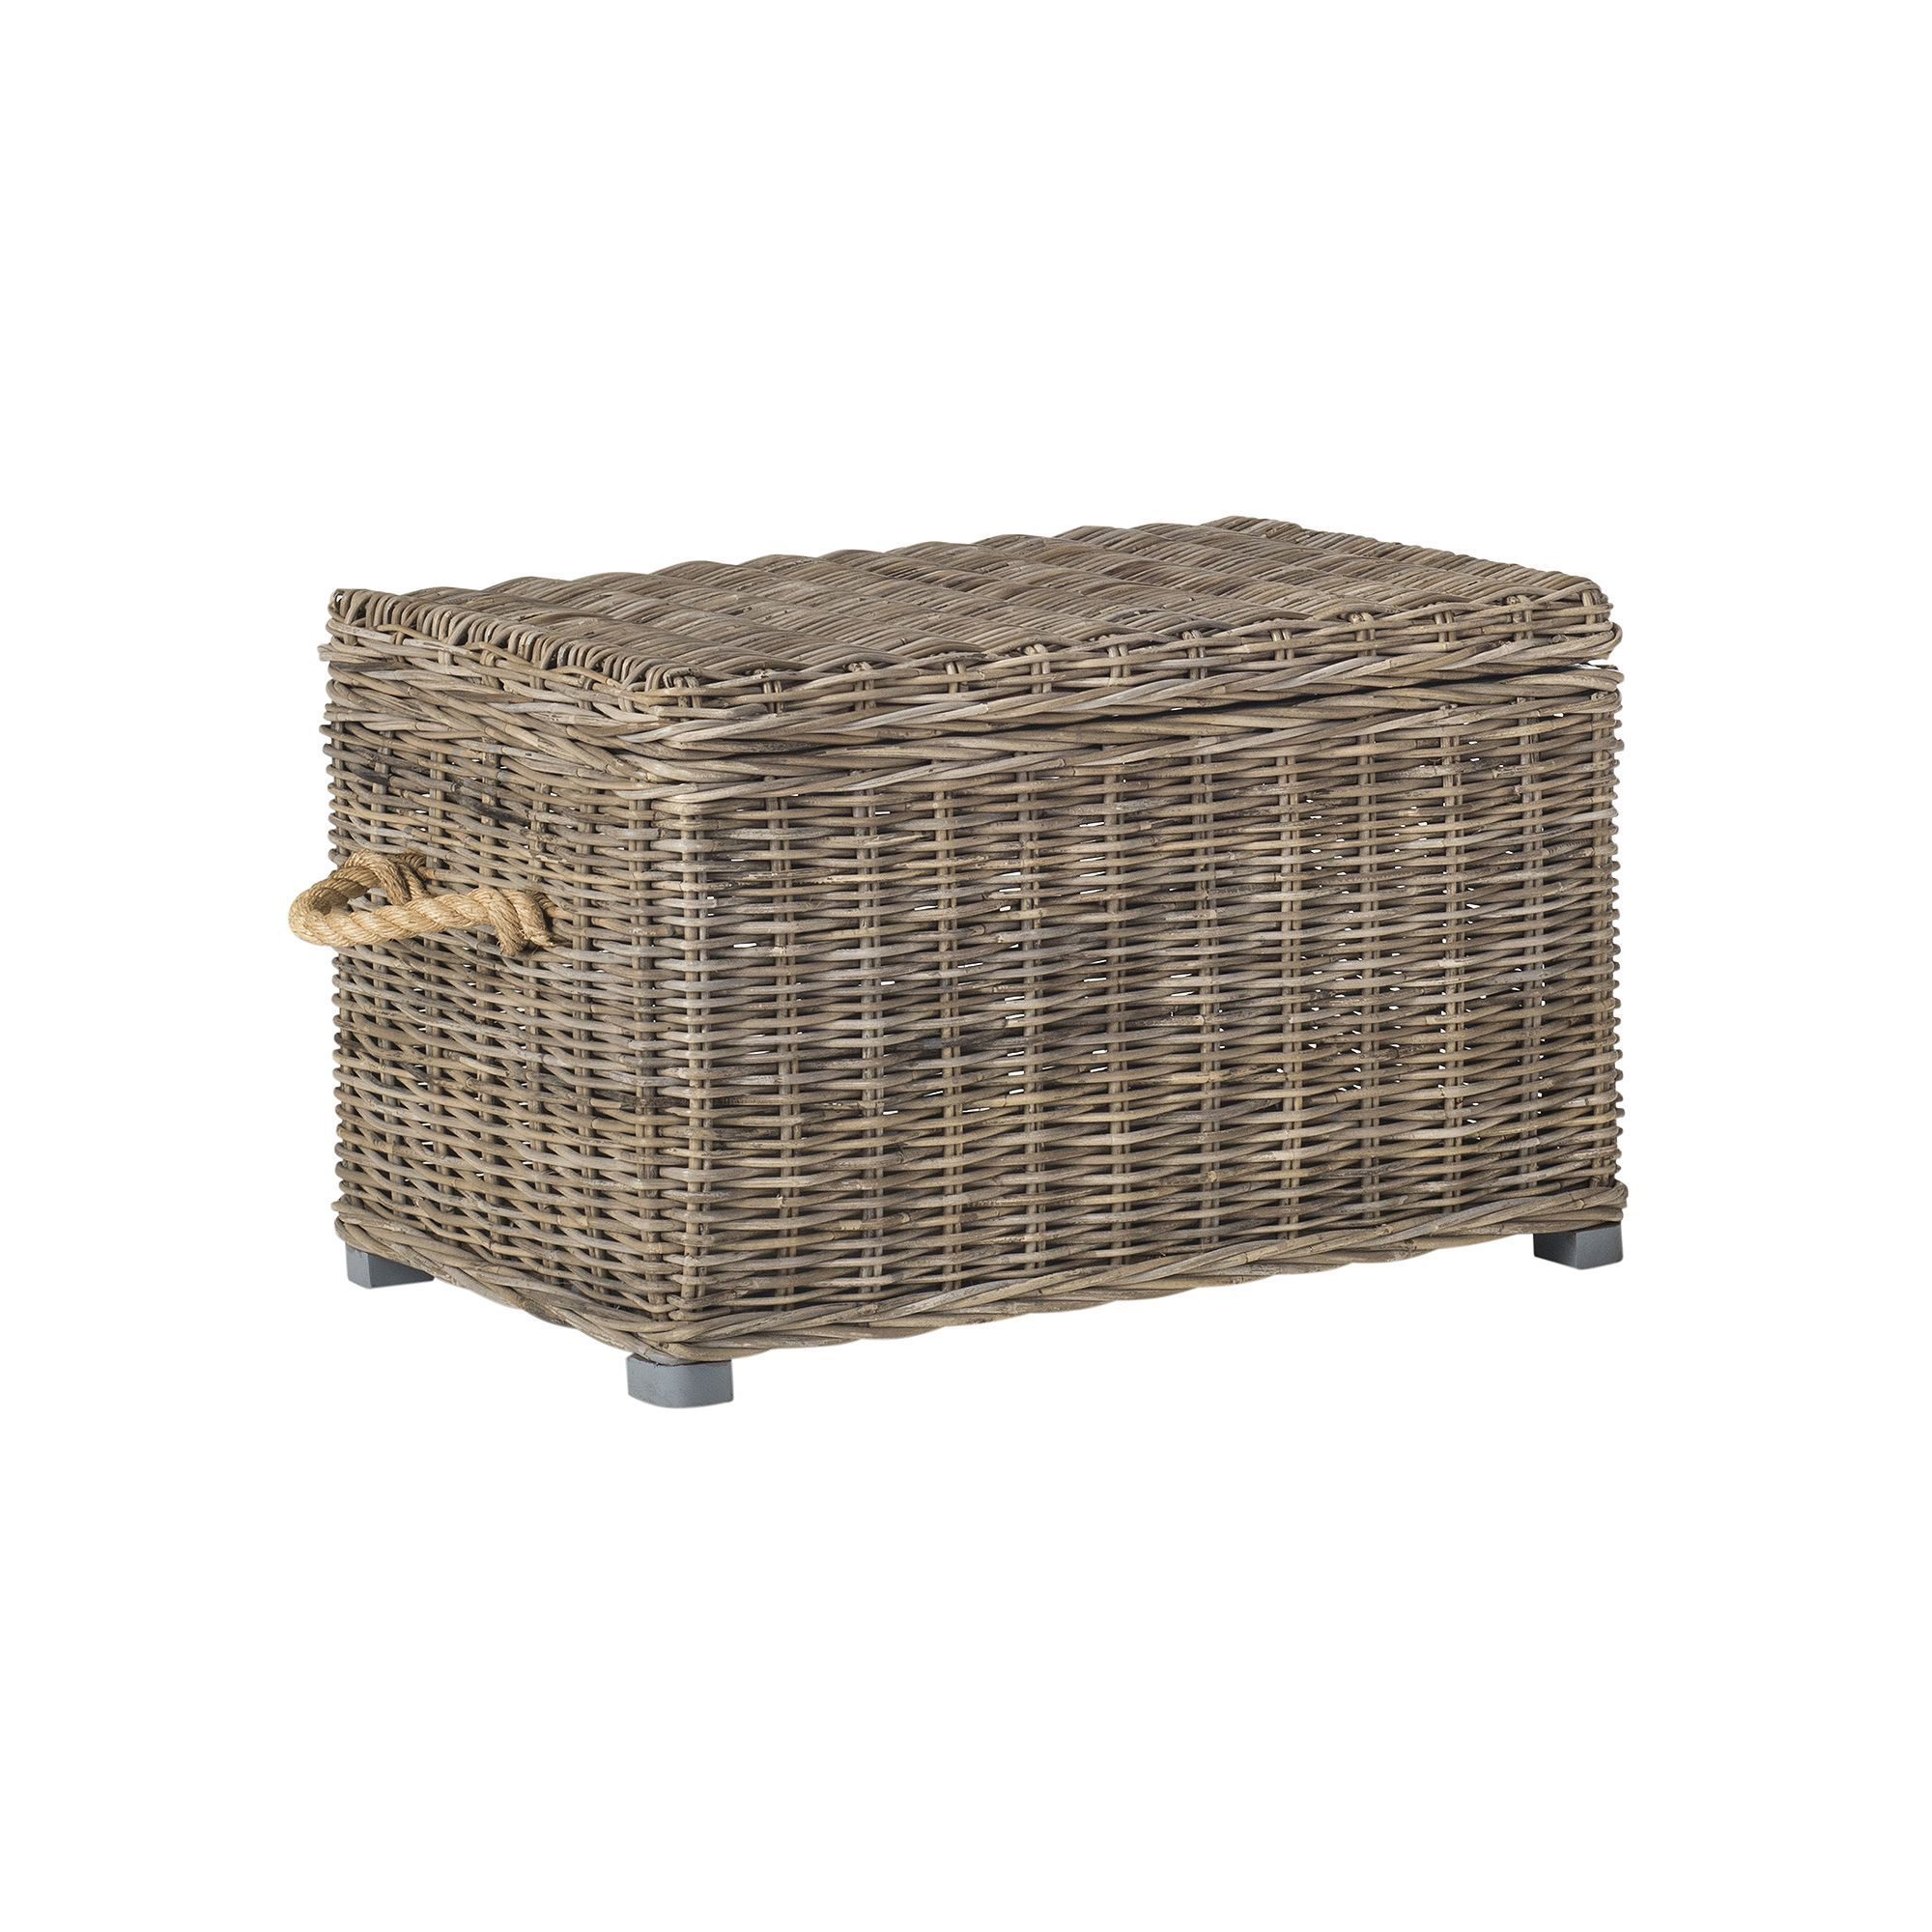 Safavieh Salim Wicker Trunk Natural